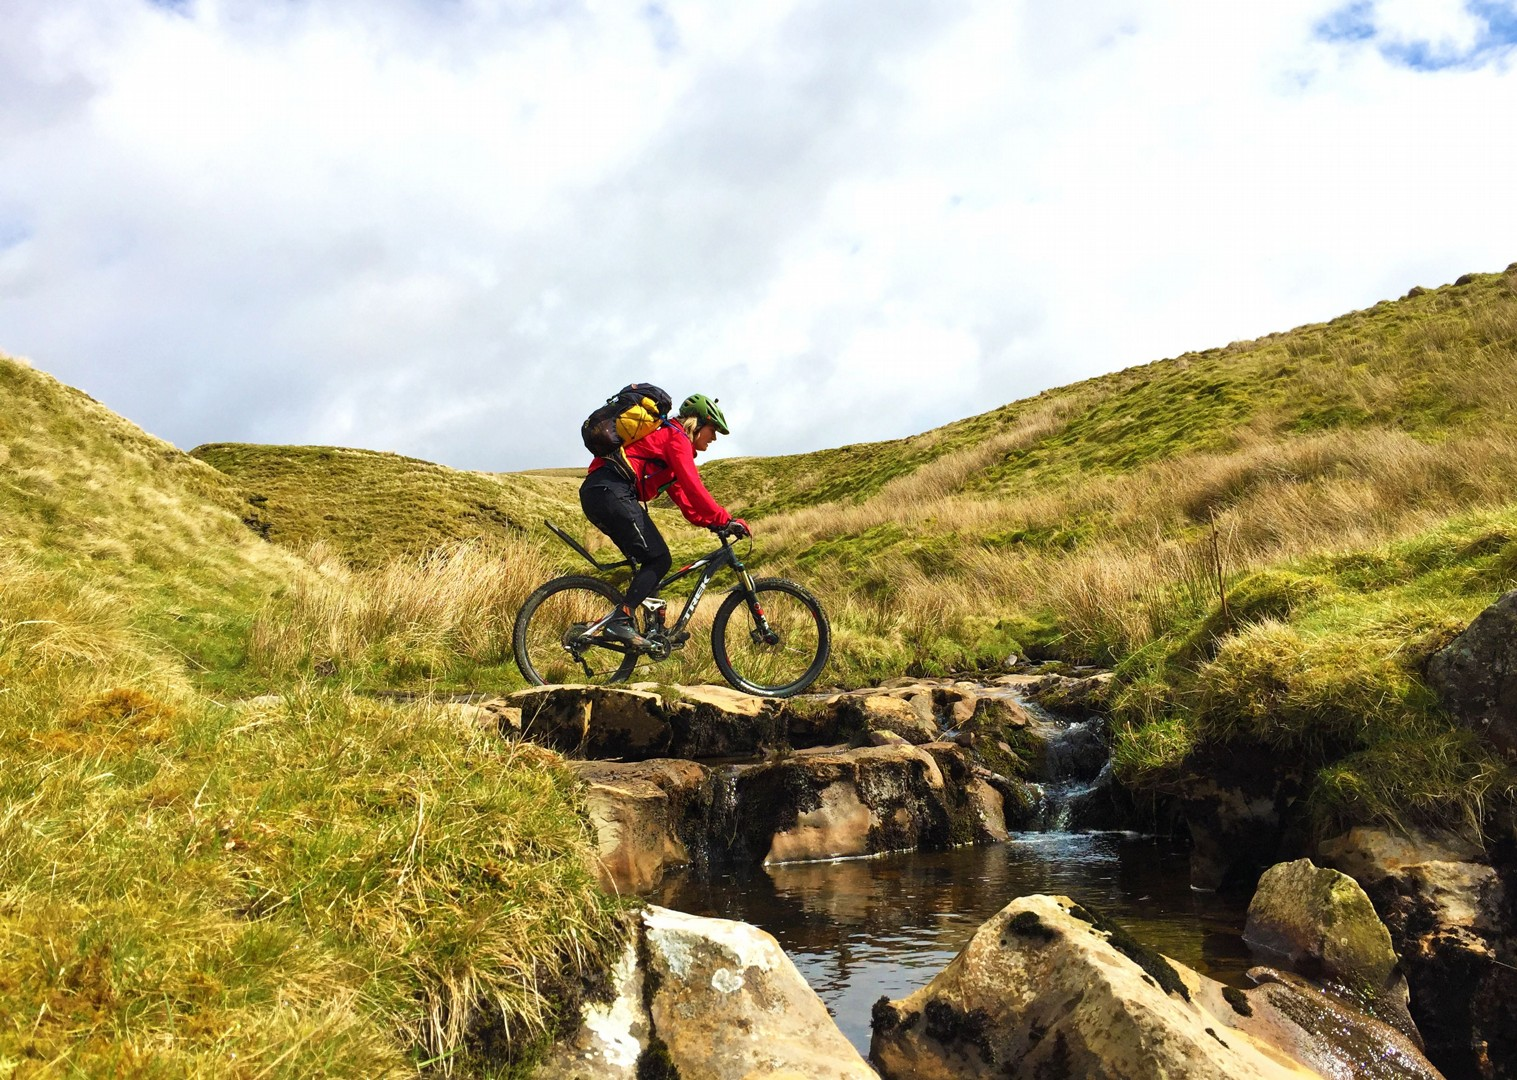 uk-pennine-bridleway-guided-mountain-bike-weekend.jpg - UK - Pennine Bridleway - Guided Mountain Bike Weekend - Mountain Biking